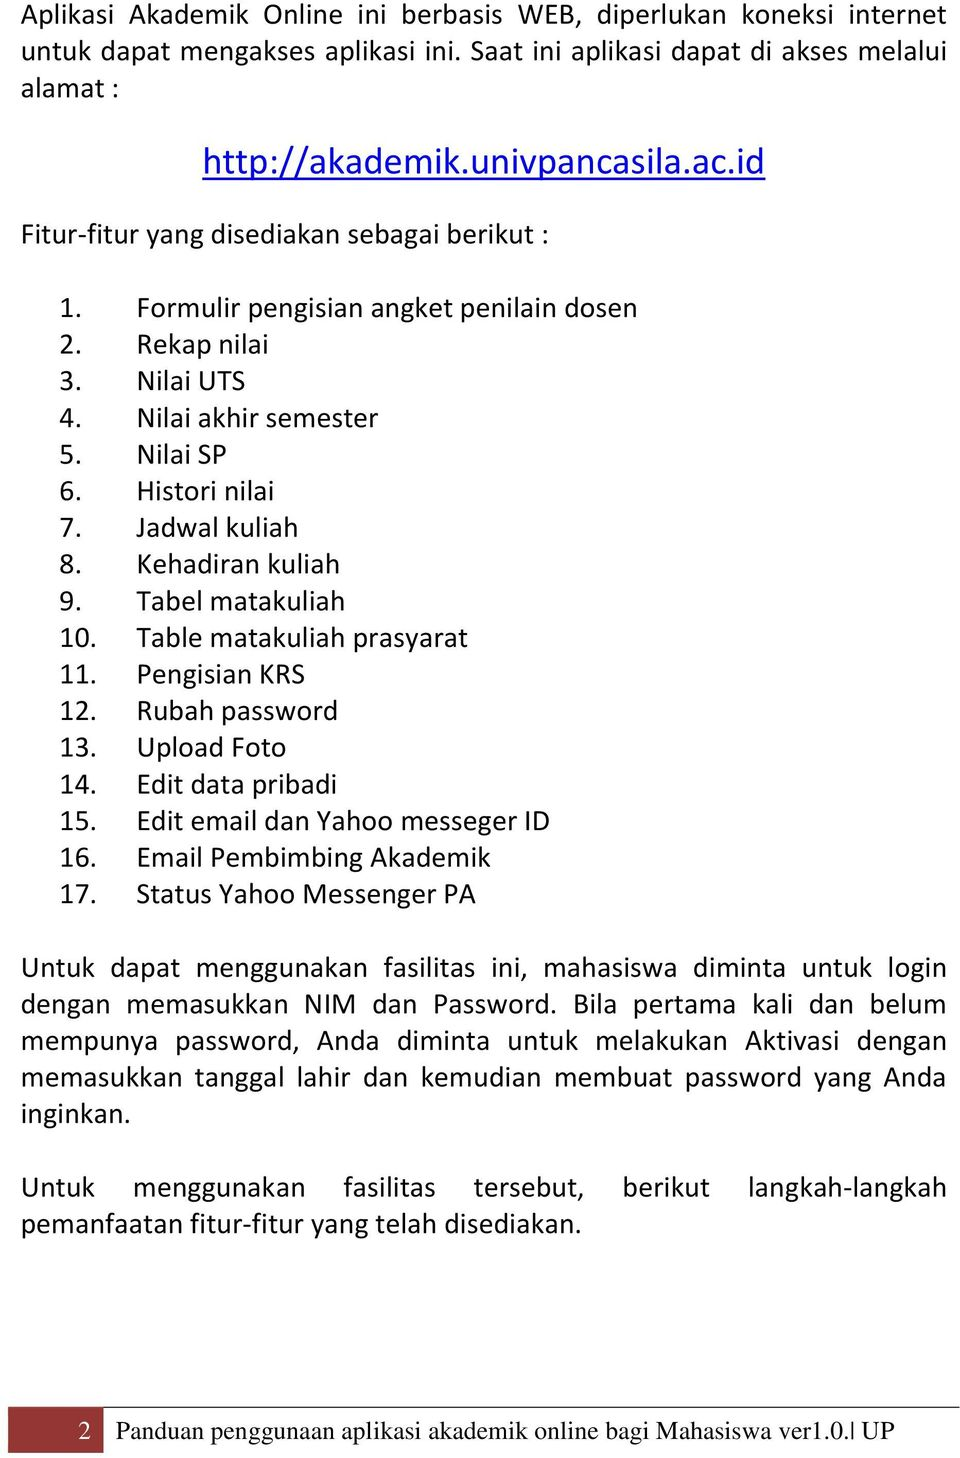 Kehadiran kuliah 9. Tabel matakuliah 10. Table matakuliah prasyarat 11. Pengisian KRS 12. Rubah password 13. Upload Foto 14. Edit data pribadi 15. Edit email dan Yahoo messeger ID 16.